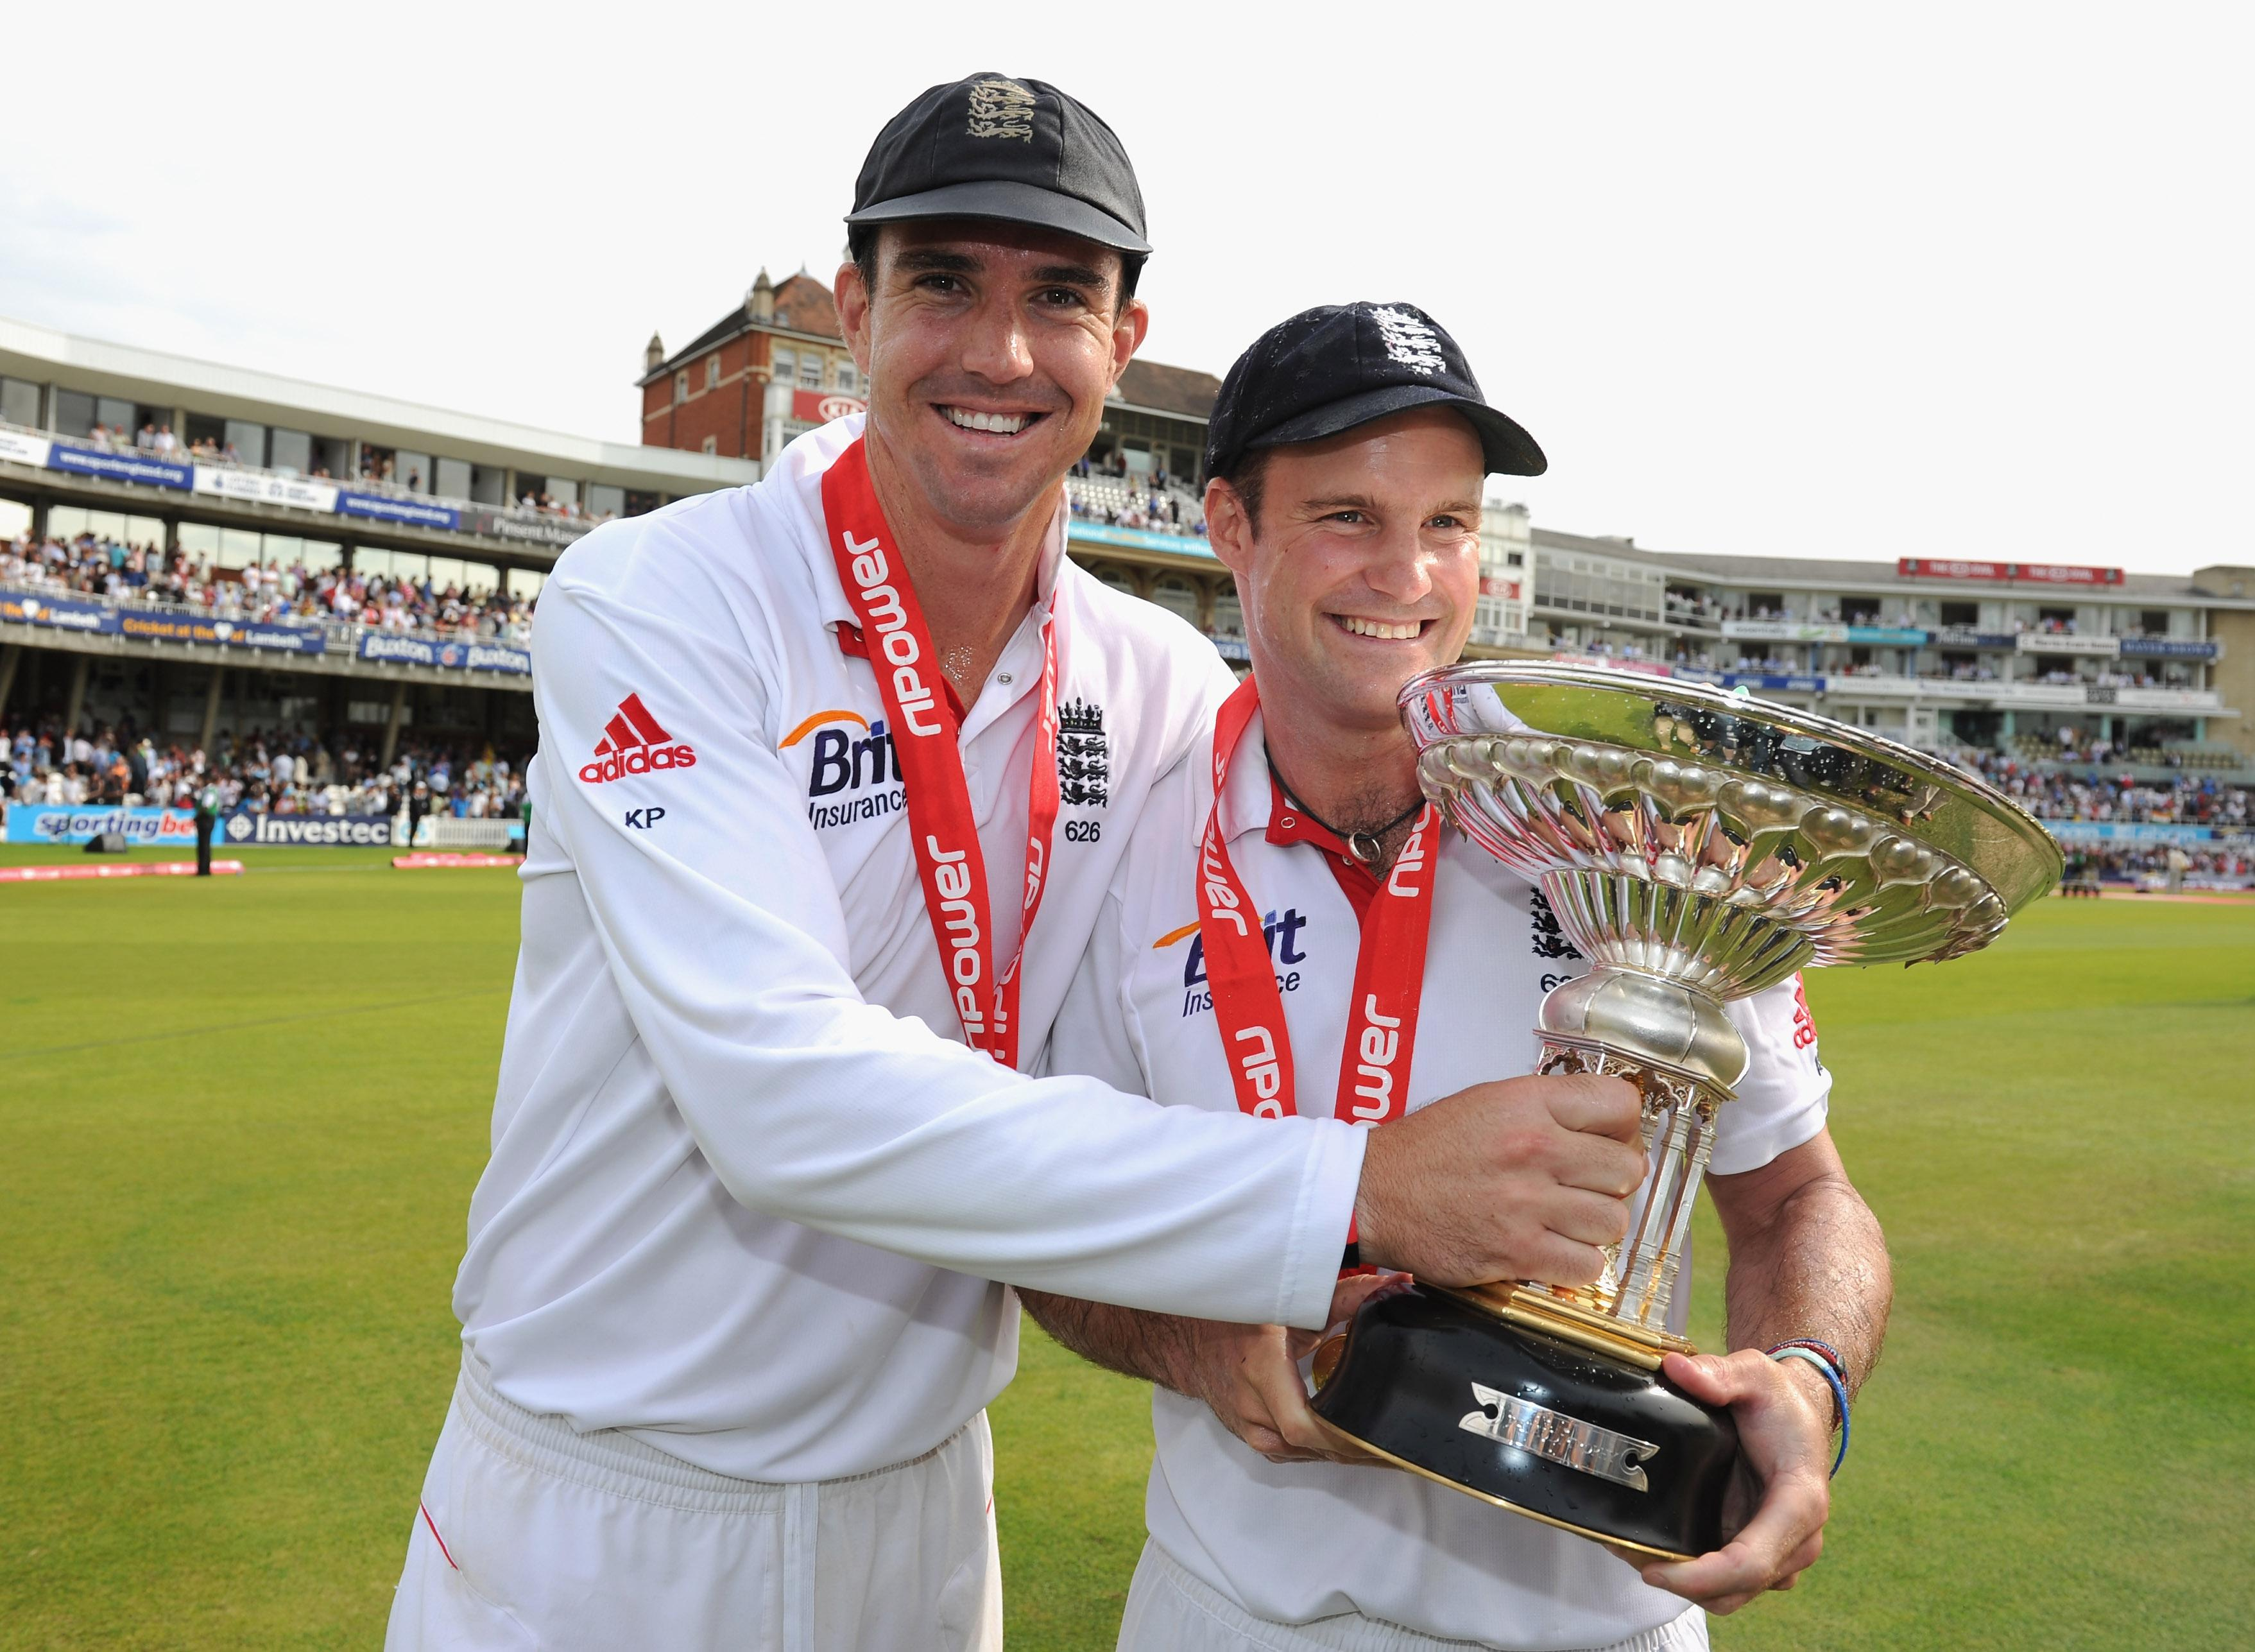 Kevin Pietersen famously fell out with England hierarchy such as Andrew Strauss